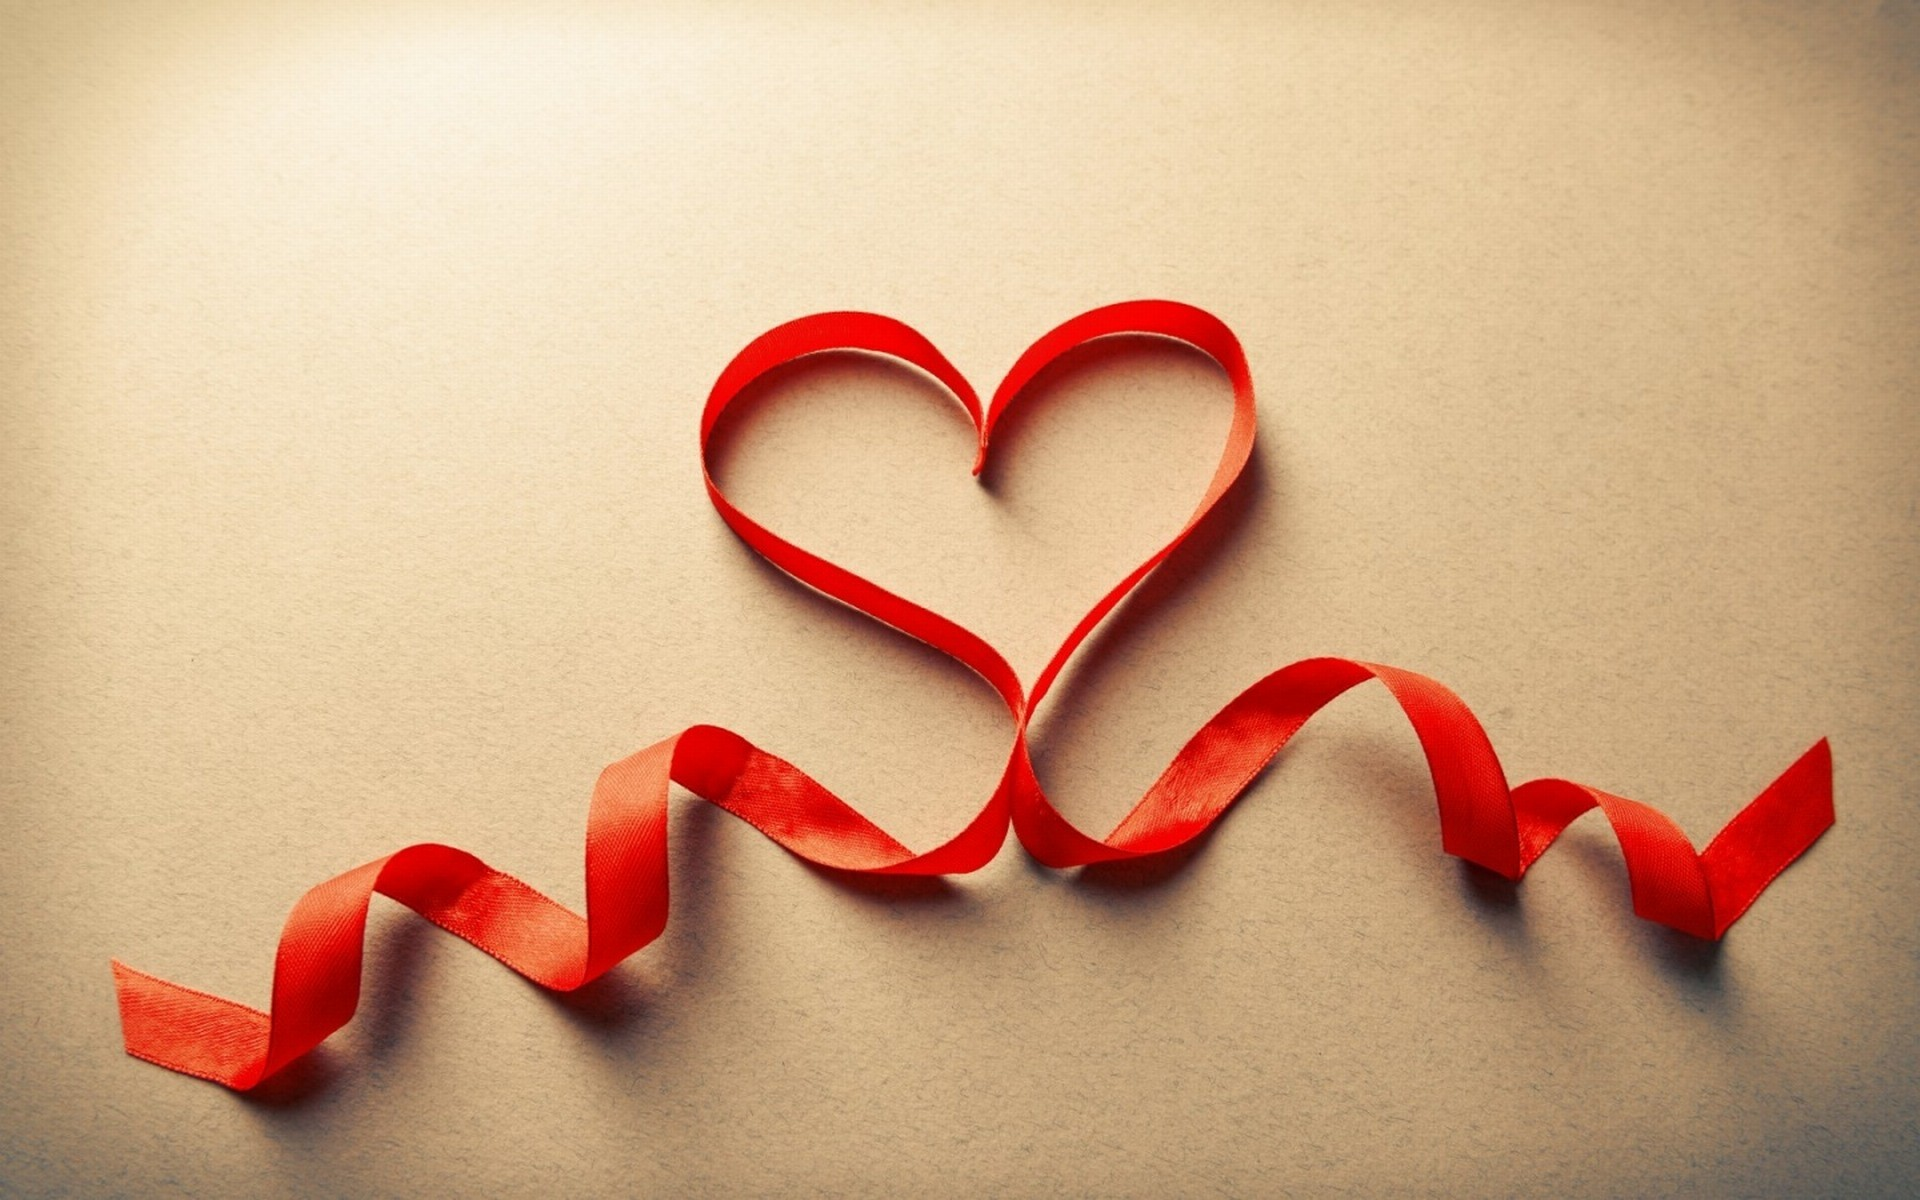 Love hd wallpaper 74 images - Love wallpapers hd ...